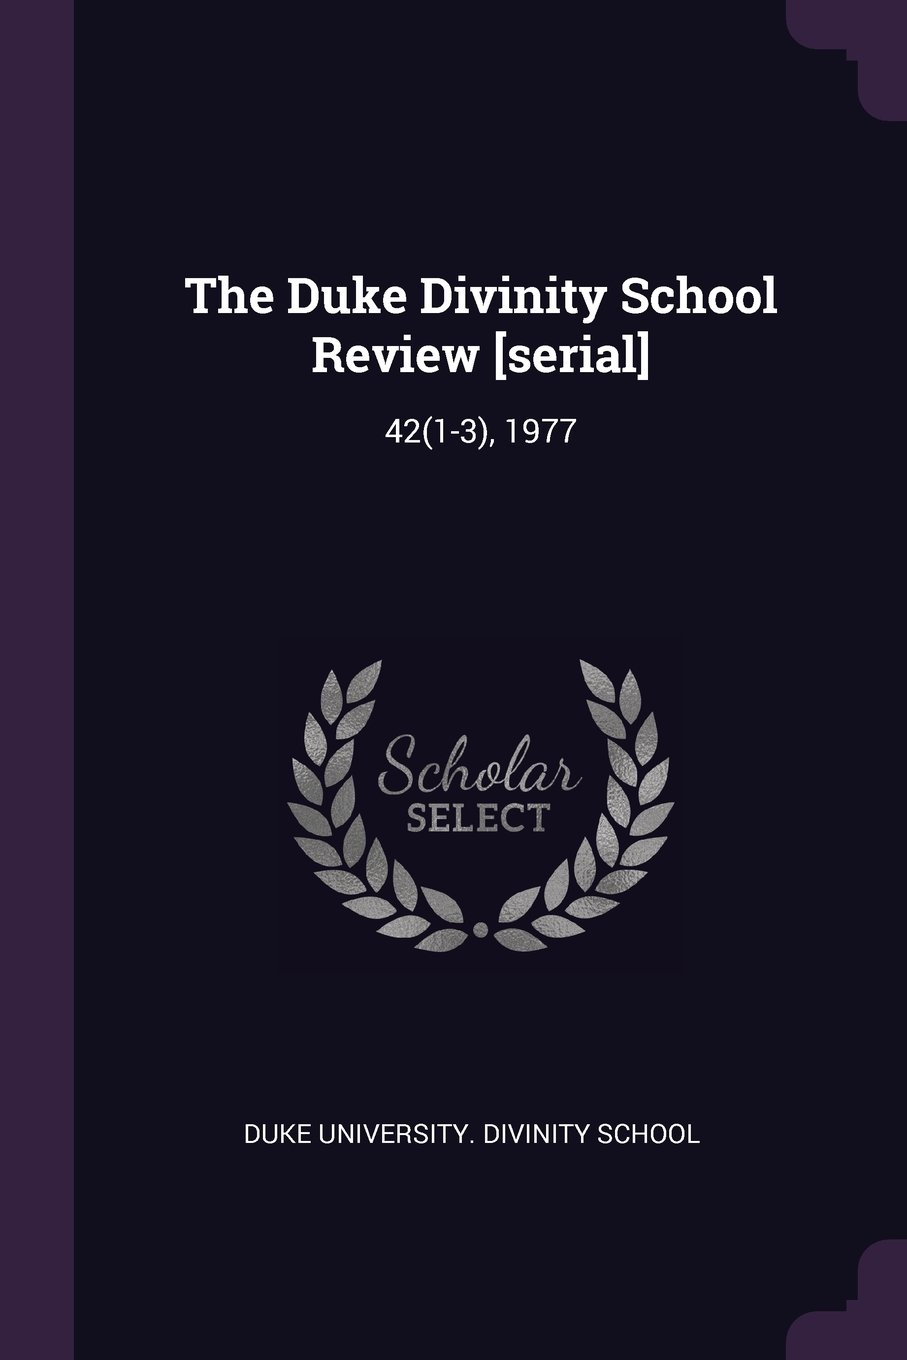 The Duke Divinity School Review [serial]: 42(1-3), 1977 PDF